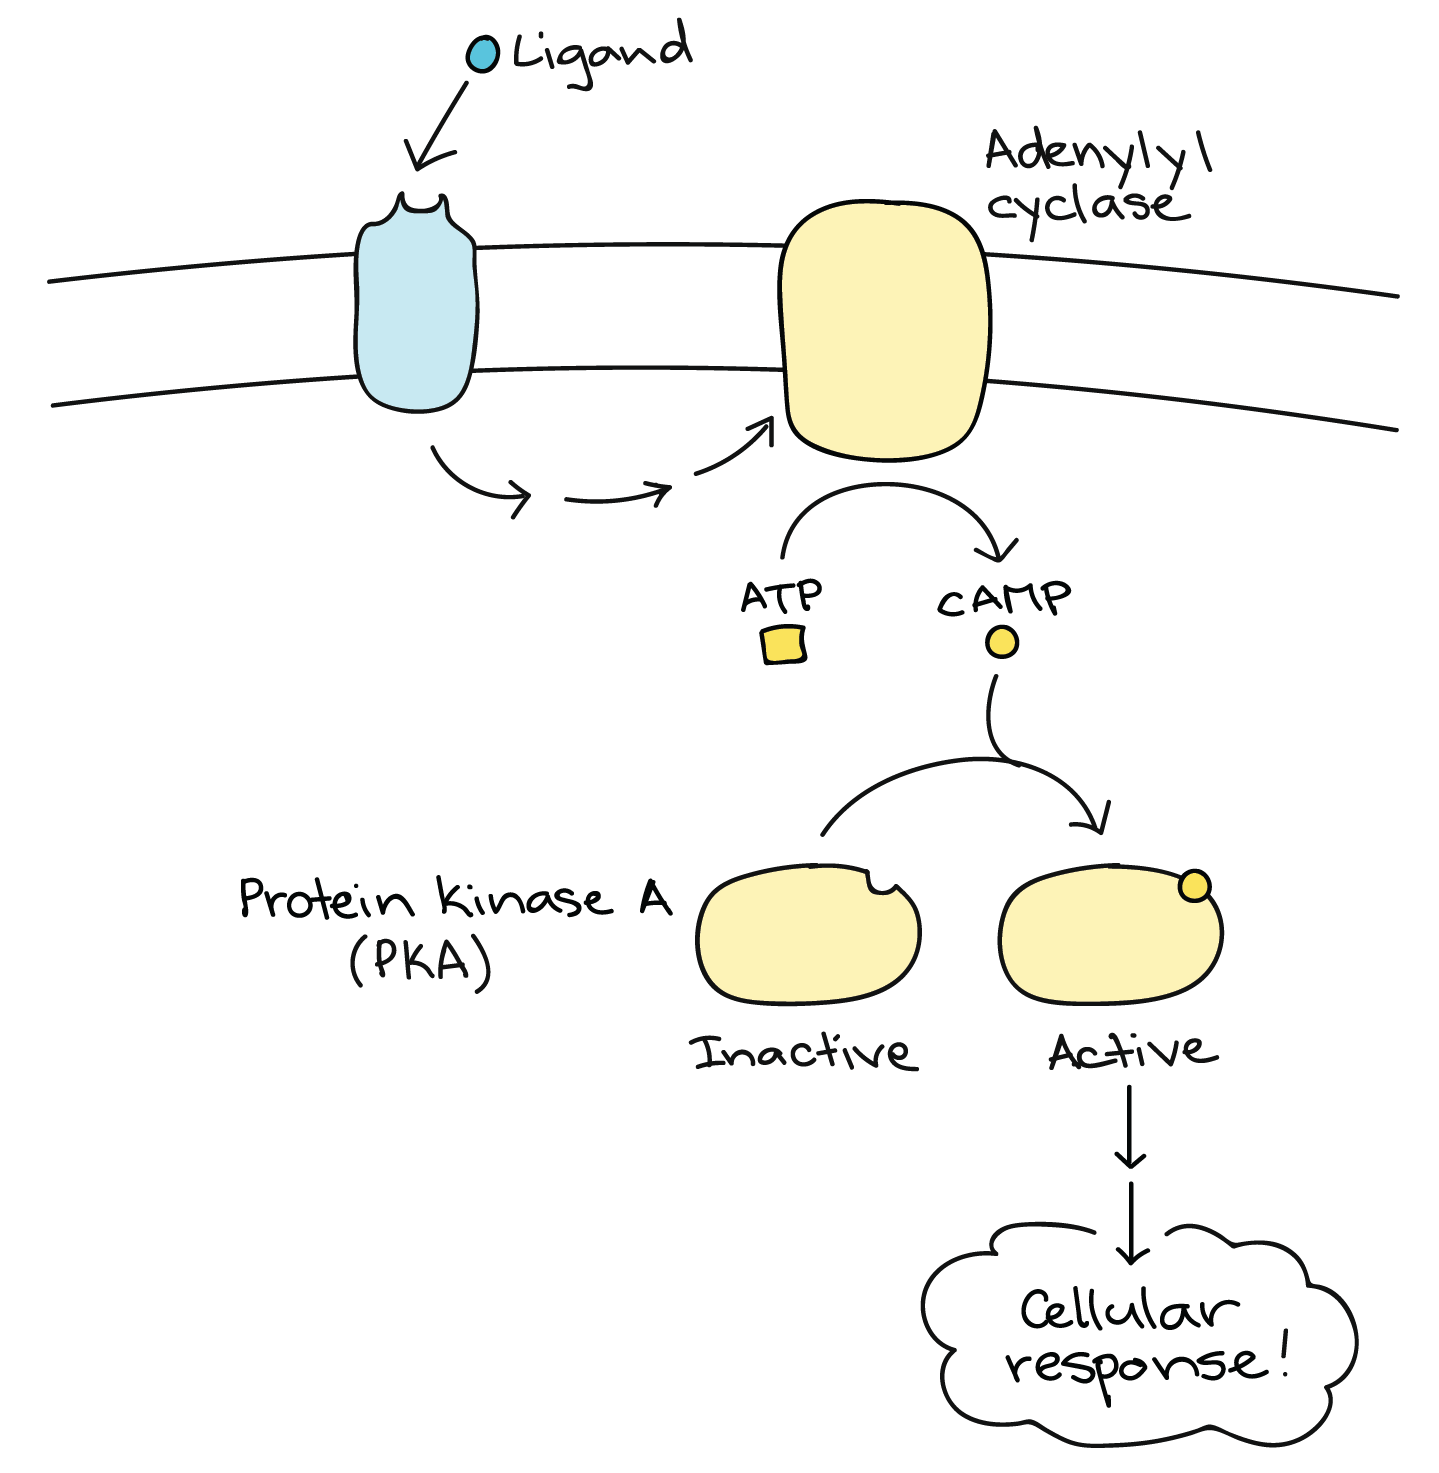 Proteins Concept Map.Signal Transduction Pathway Cell Signaling Article Khan Academy